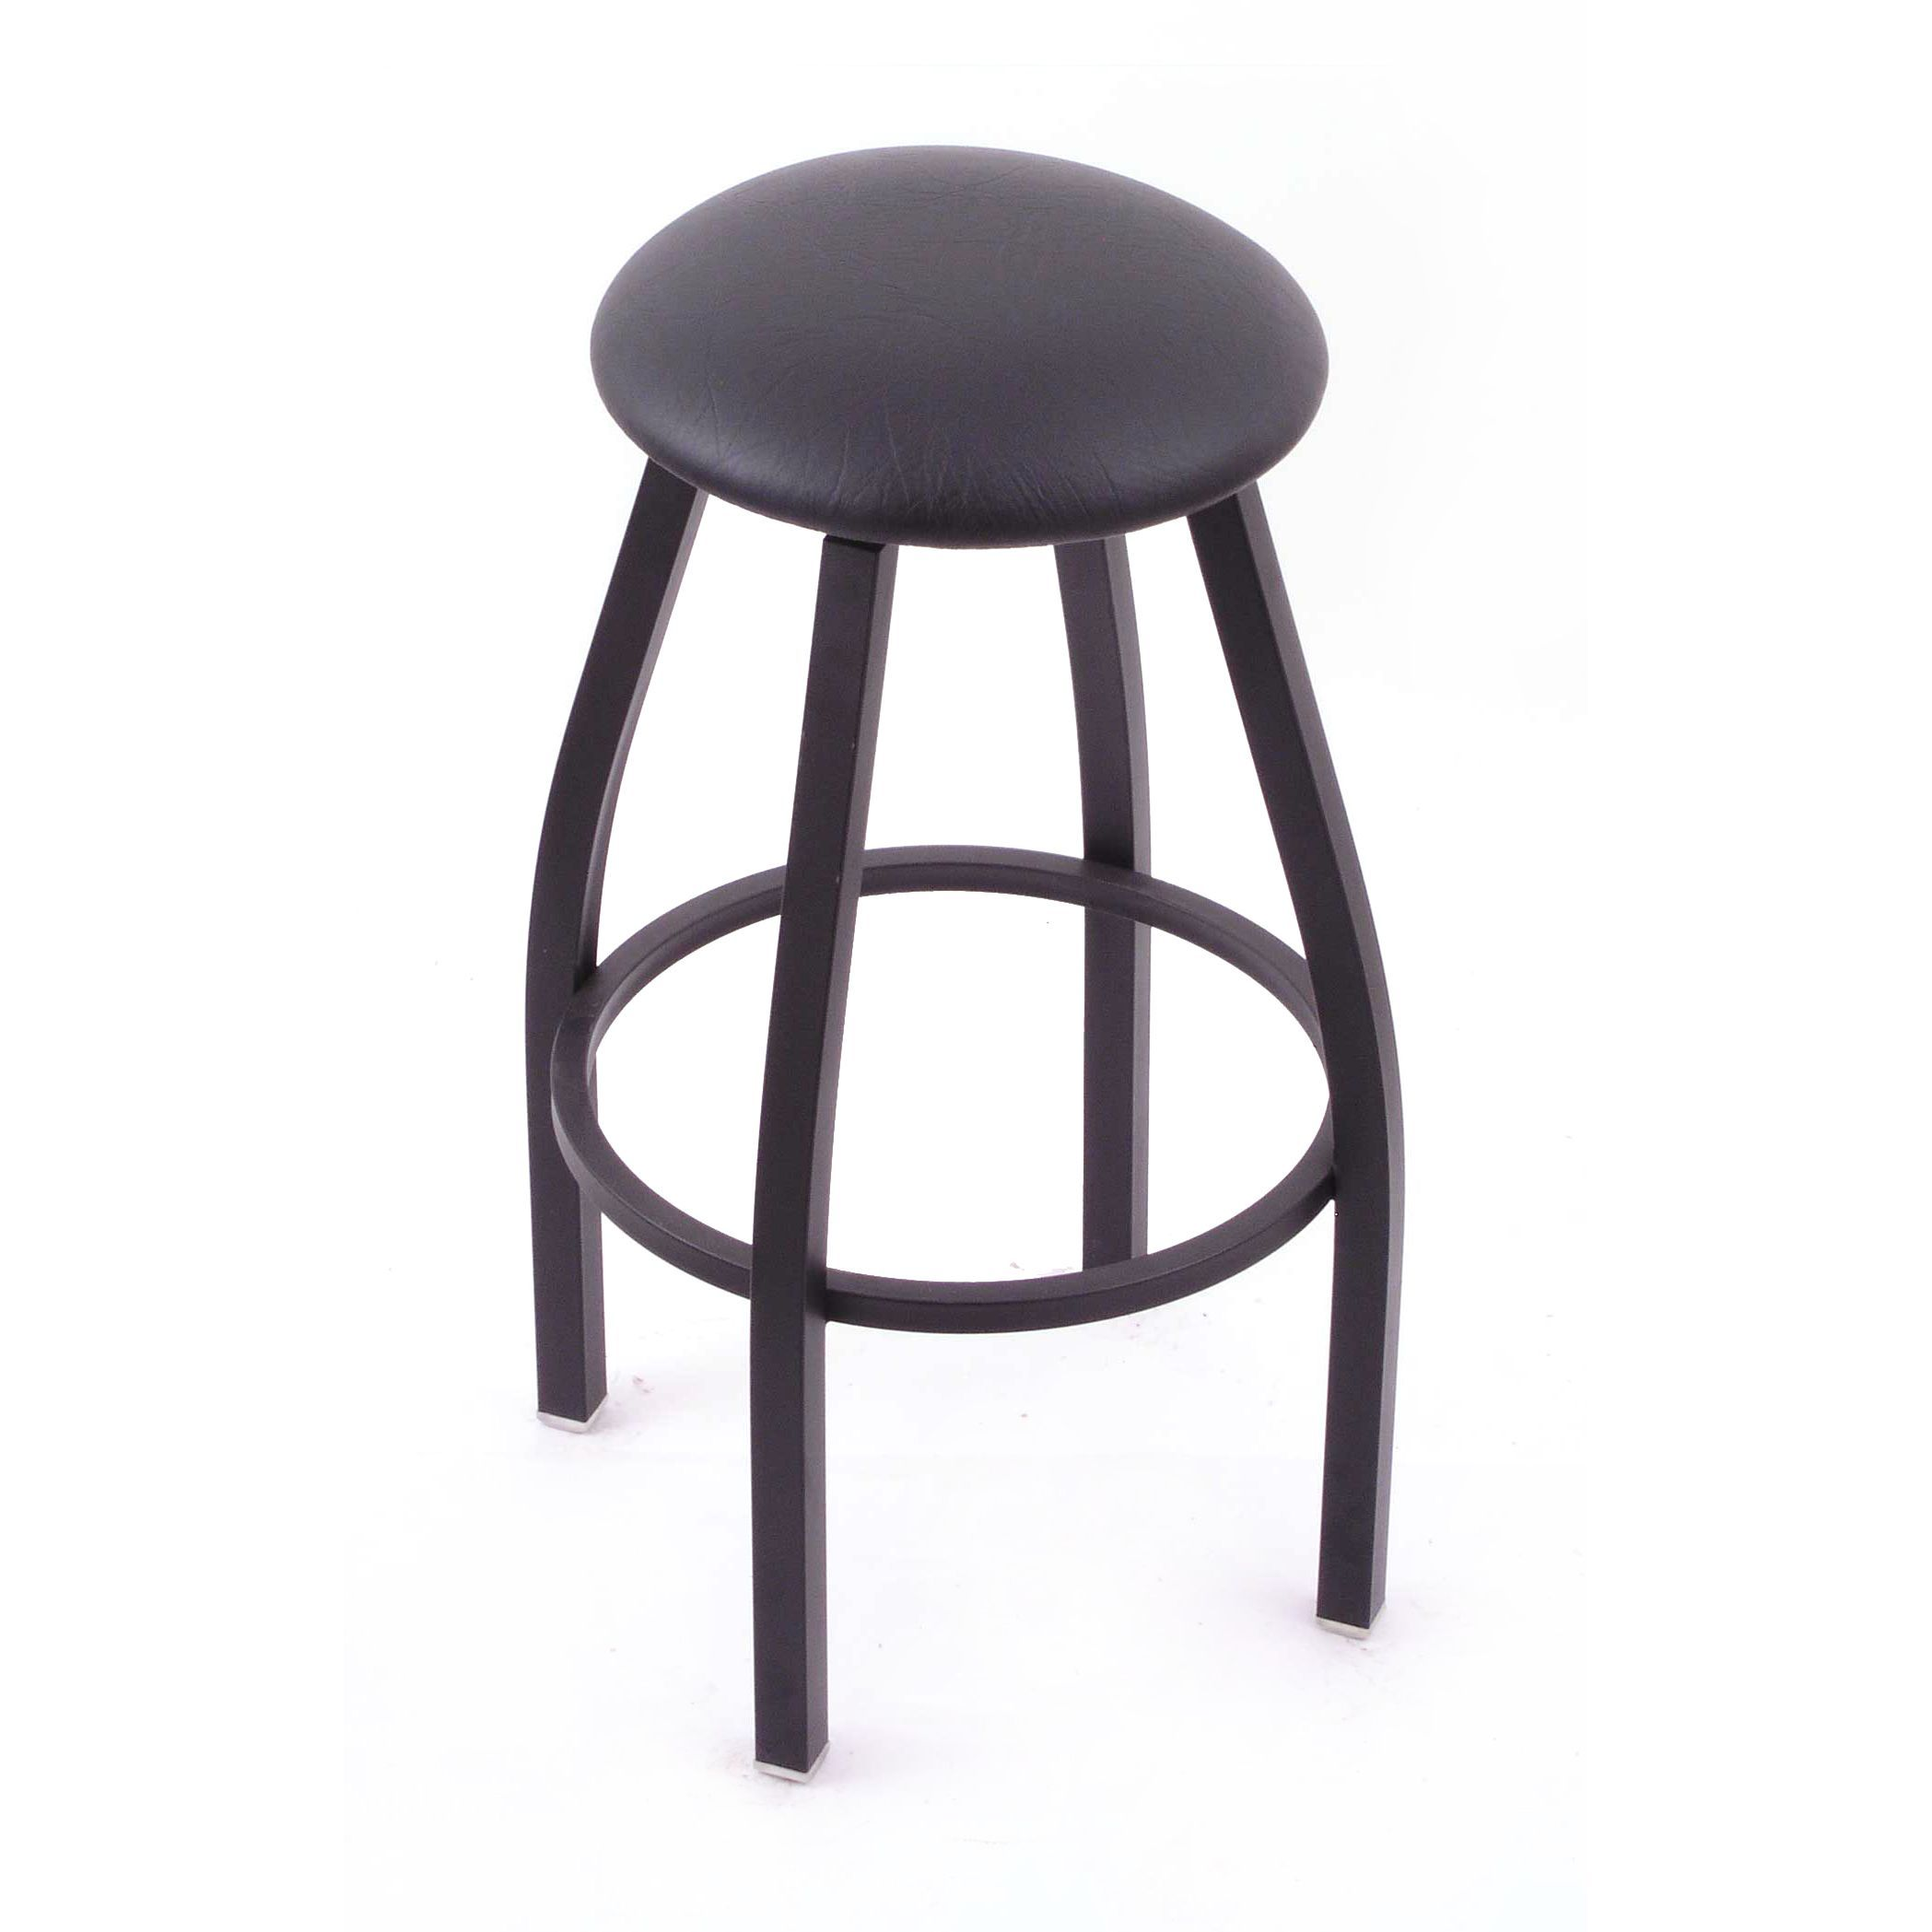 Awesome Cambridge Black 34 Inch Backless Stool Black Products Squirreltailoven Fun Painted Chair Ideas Images Squirreltailovenorg